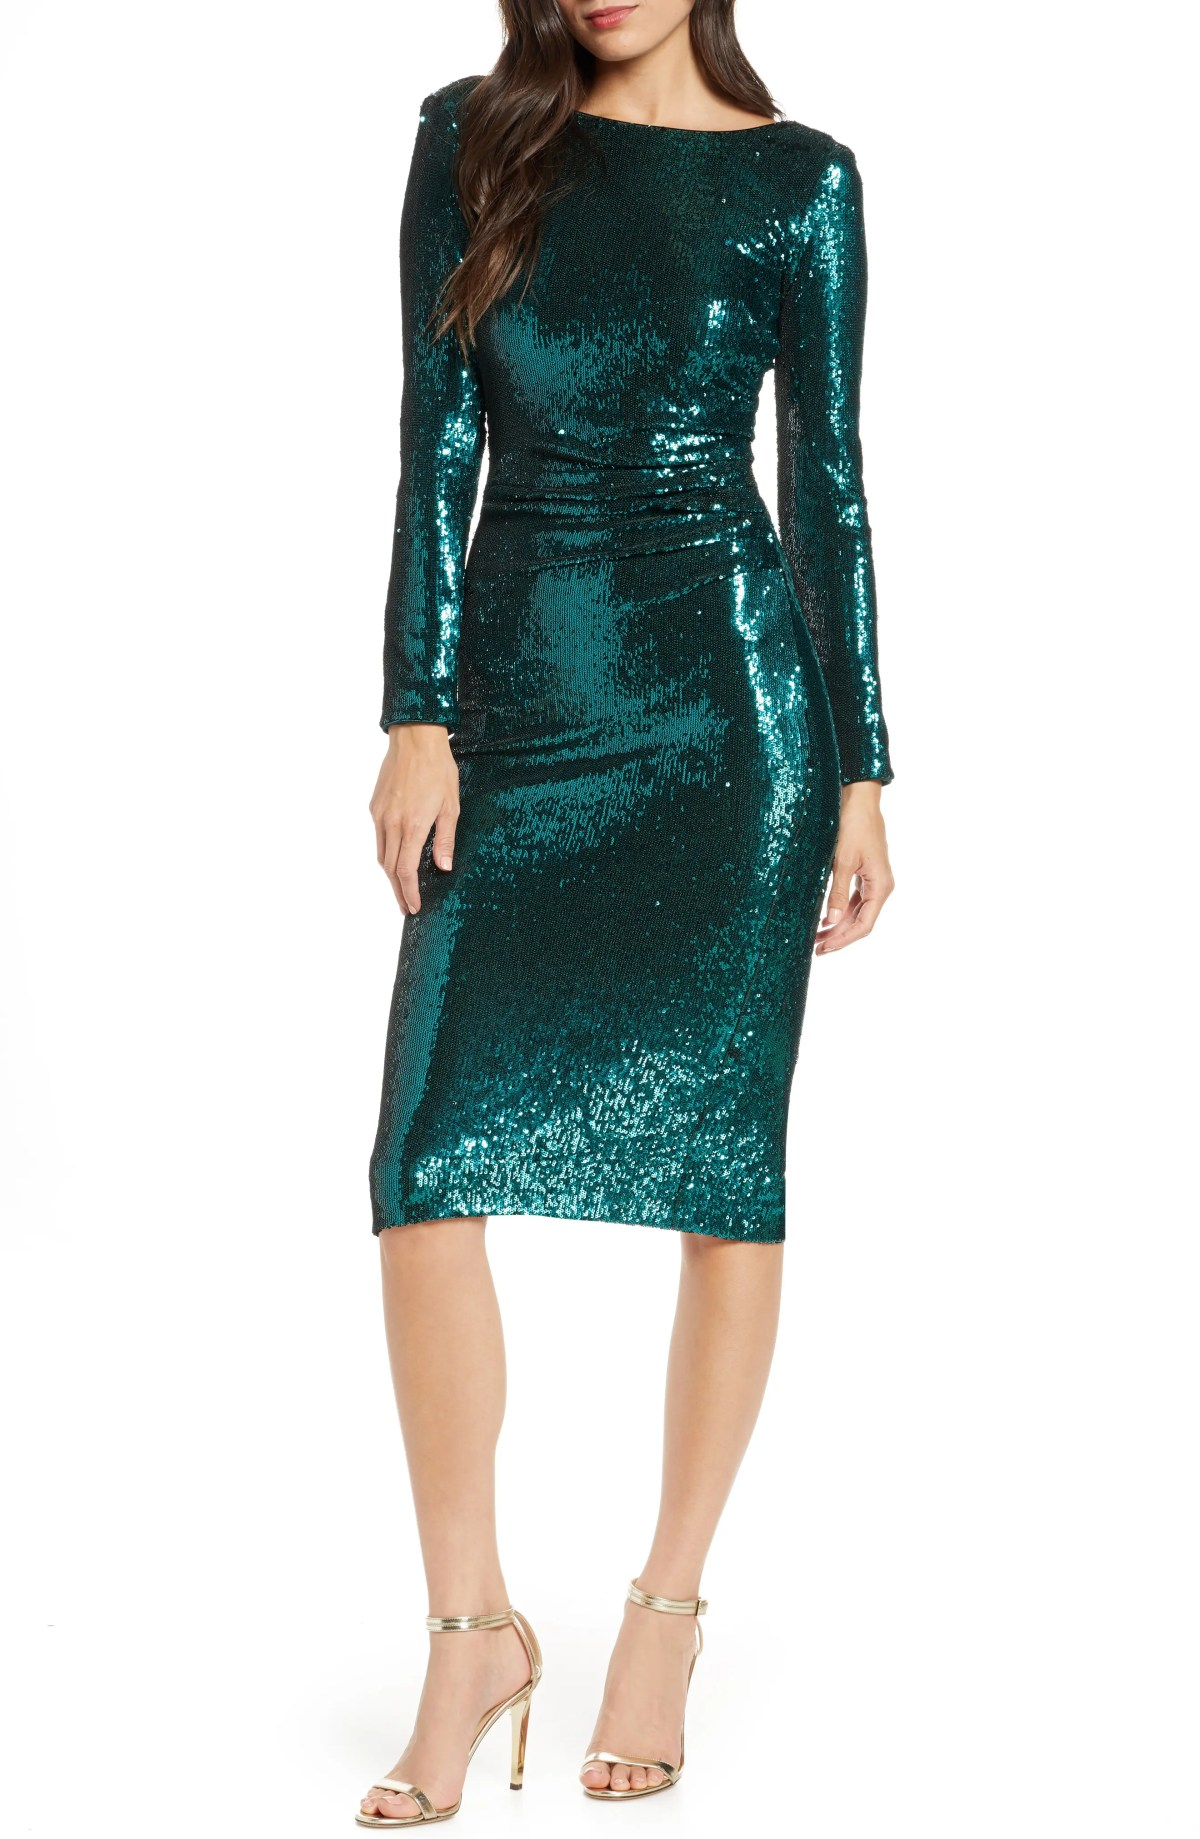 DRESS THE POPULATION Emilia Sequin Long Sleeve Cocktail Dress, Main, color, DEEP EMERALD